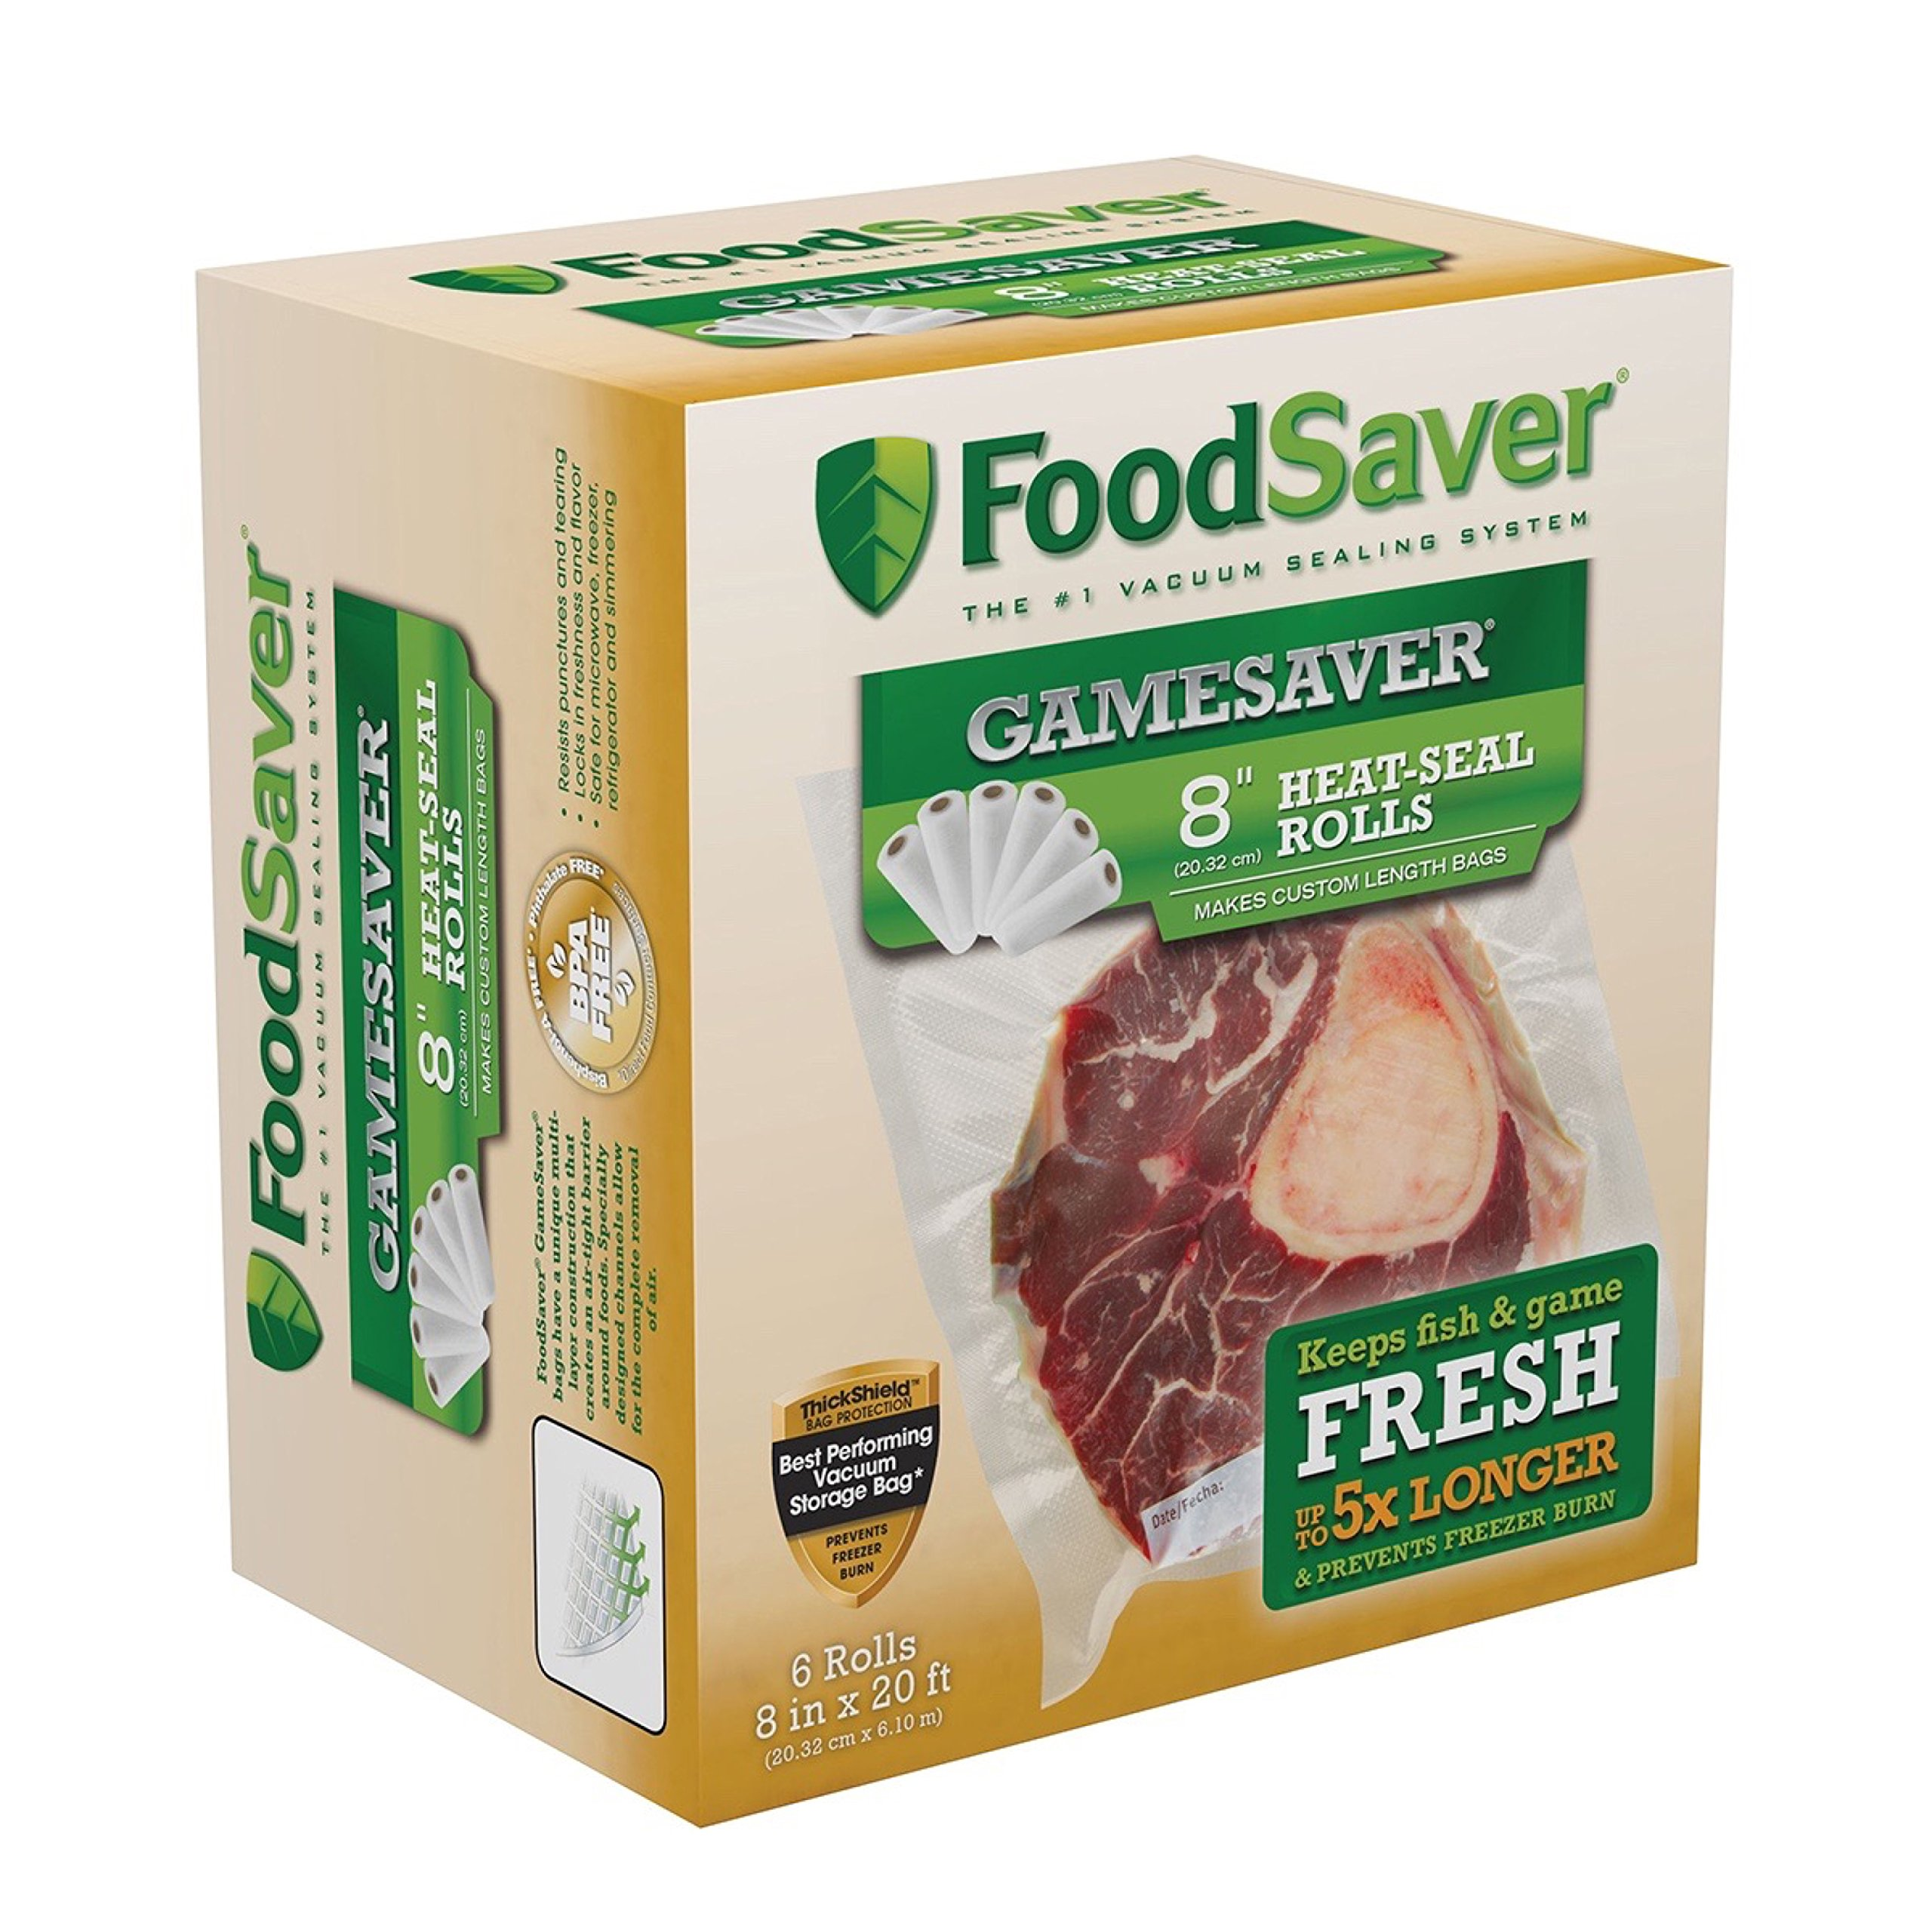 FoodSaver 8'' x 20' GameSaver Long Heat-Seal Rolls, 8 Inches by 20 Feet, 6-Pack